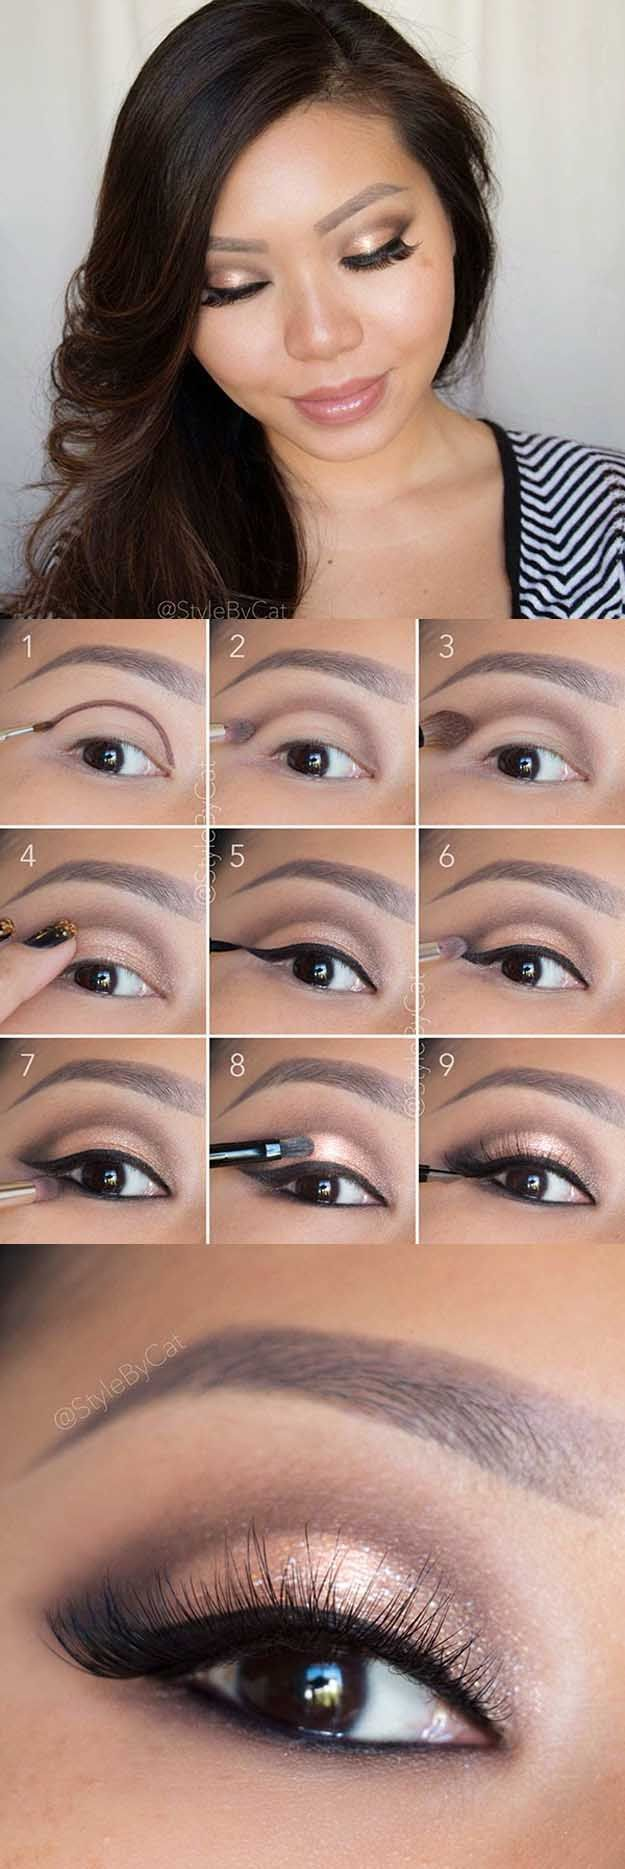 Best Eye Makeup Tips And Tricks For Small Eyes: 25+ Trending Smokey Eye Makeup Ideas On Pinterest